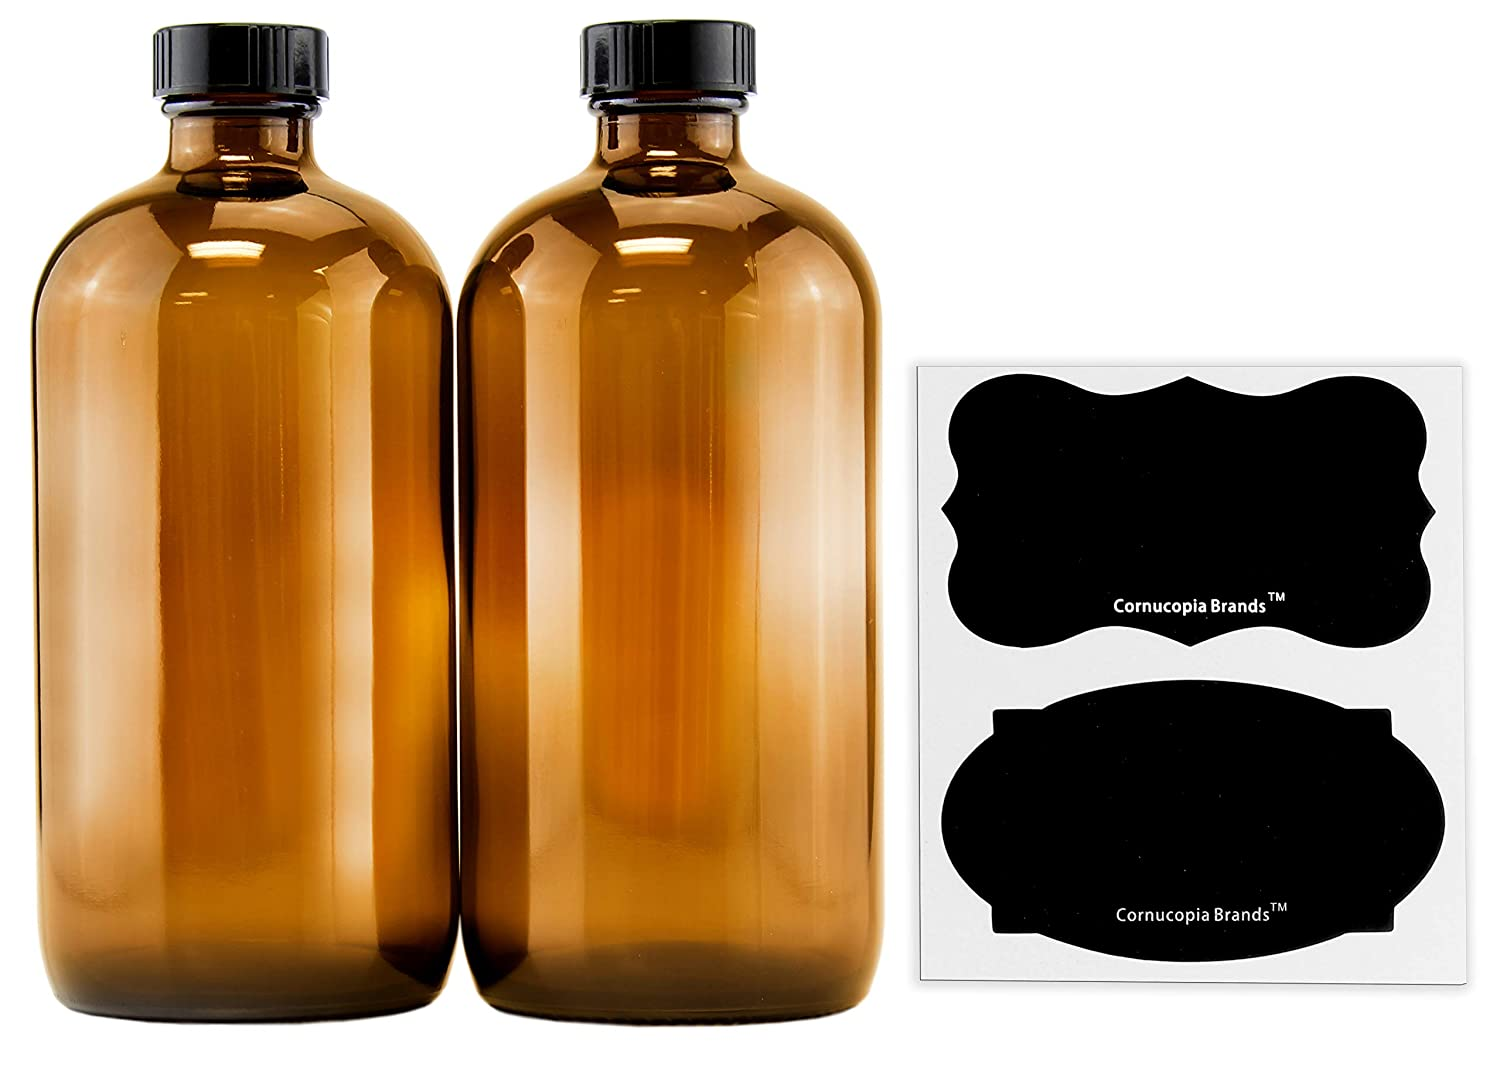 16-Ounce Amber Glass Bottles with Reusable Chalk Labels and Lids 2 Pack , Refillable Brown Boston Round Bottles, with Black 28-400 Caps